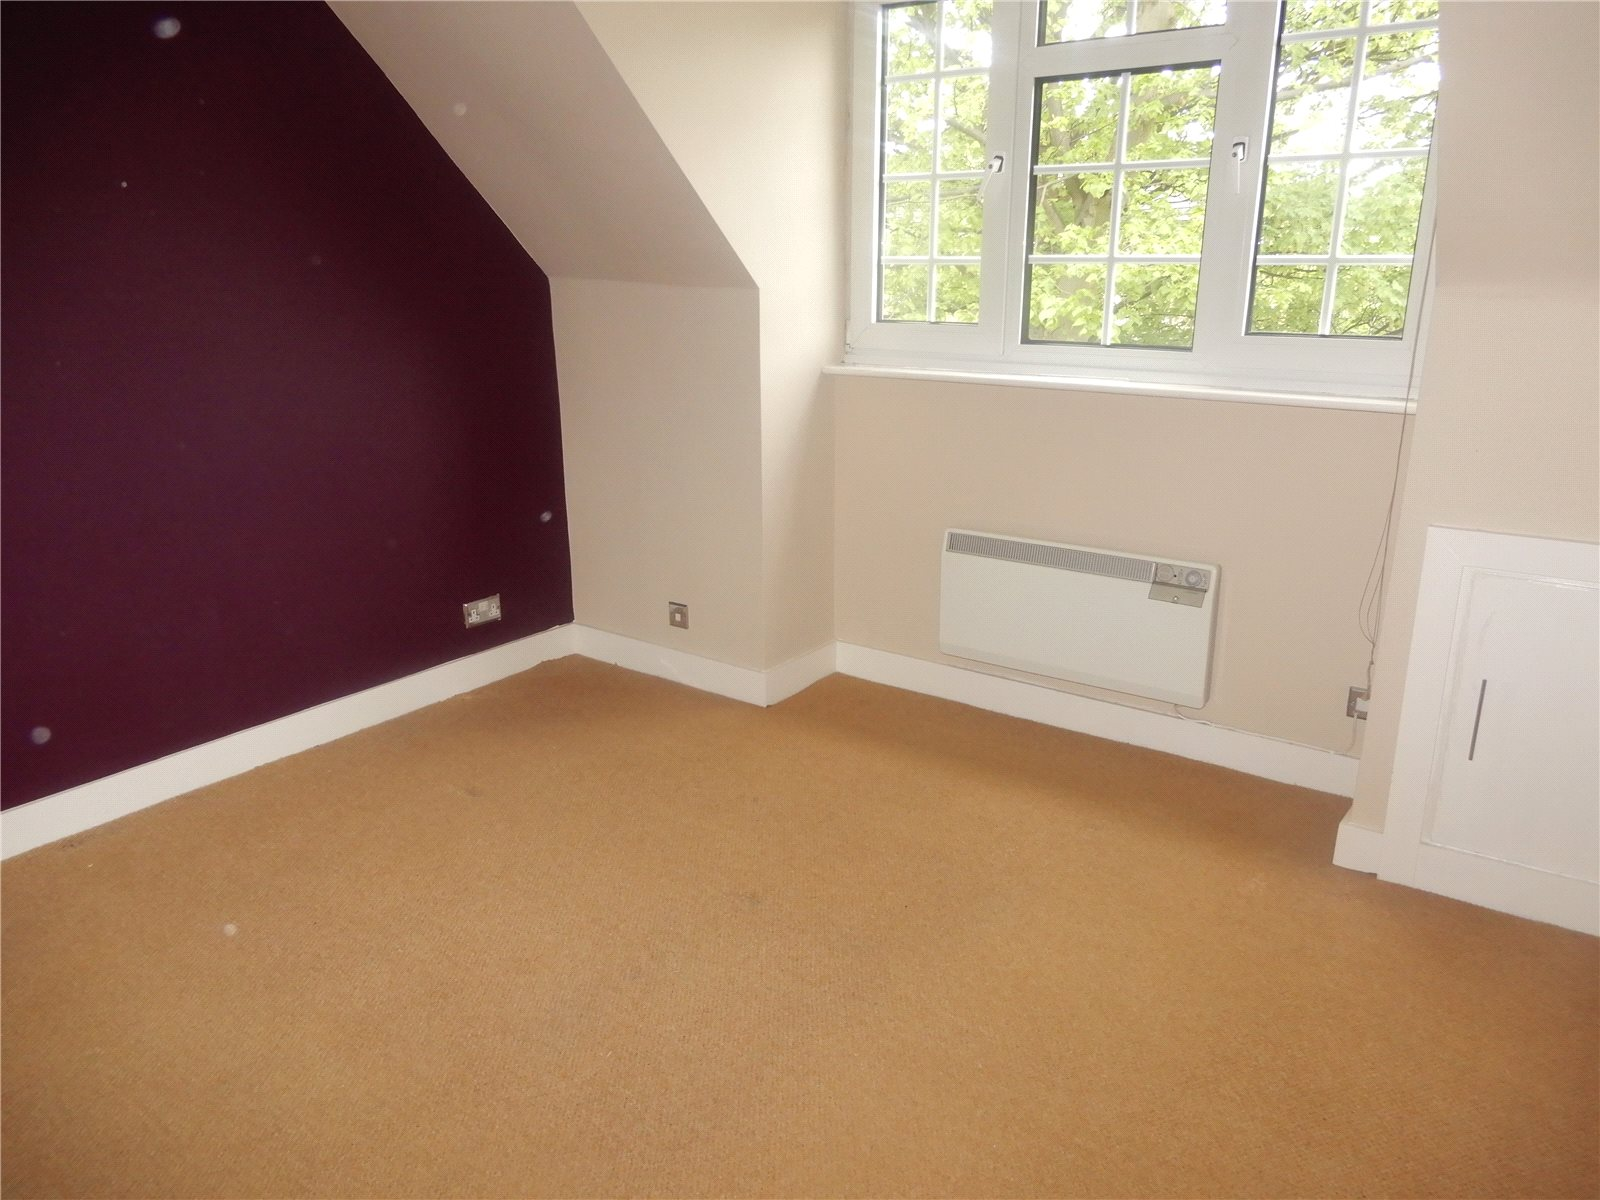 Whitegates Huddersfield 2 Bedroom Flat For Sale In Arncliffe Court Croft House Lane Marsh